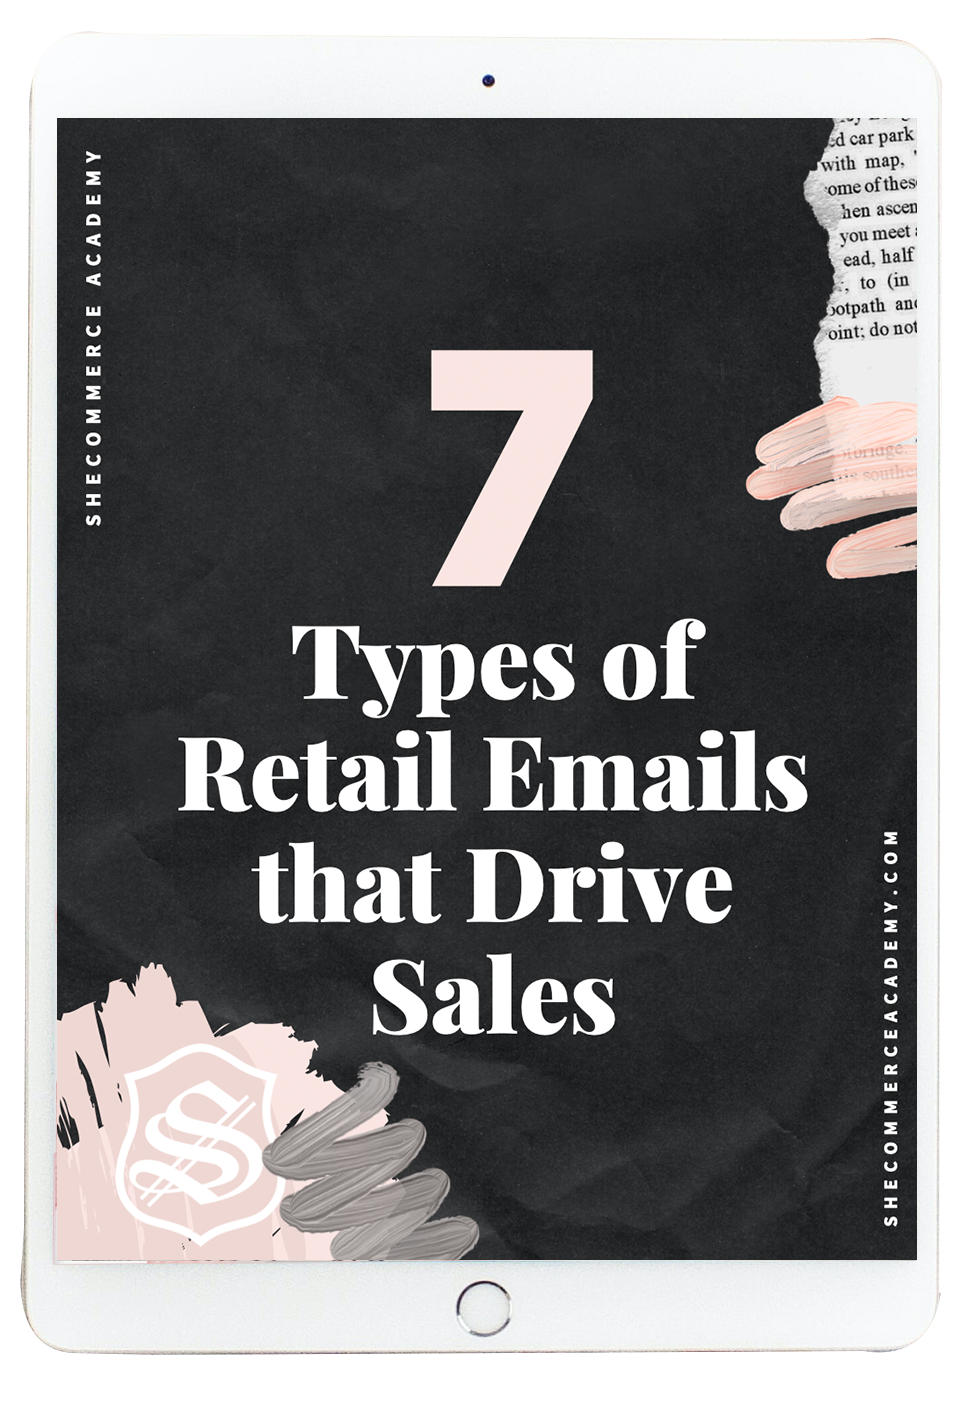 7 Types of Retail Emails that Drive Sales